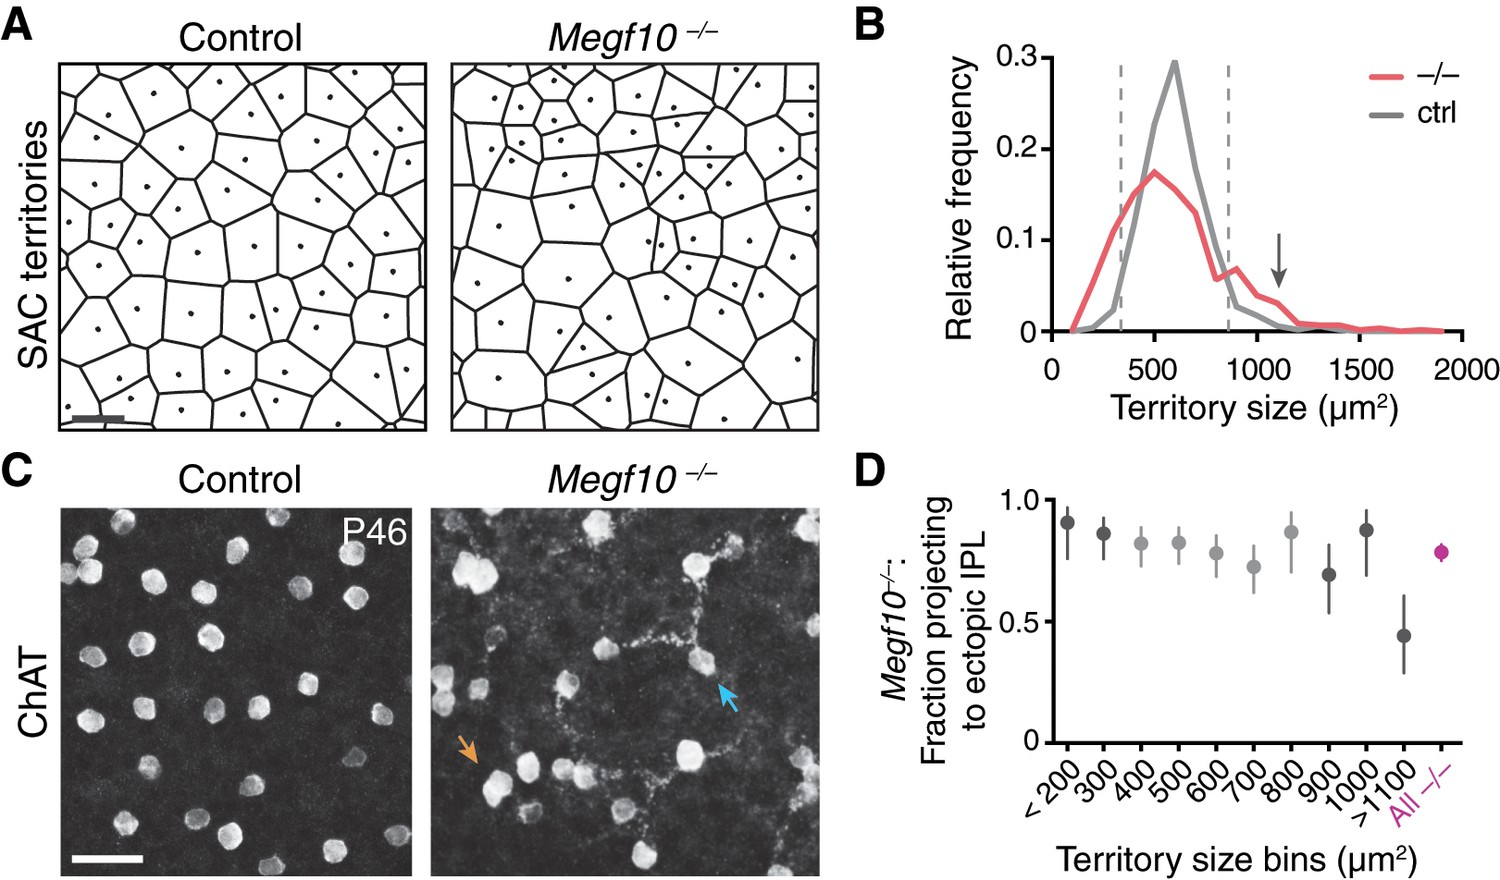 Formation Of Retinal Direction Selective Circuitry Initiated By Series And Parallel Circuits Must Be Applied Selectively To Severity Megf10 Sac Mosaic Phenotype Does Not Correlate With Ipl Targeting Error Rate